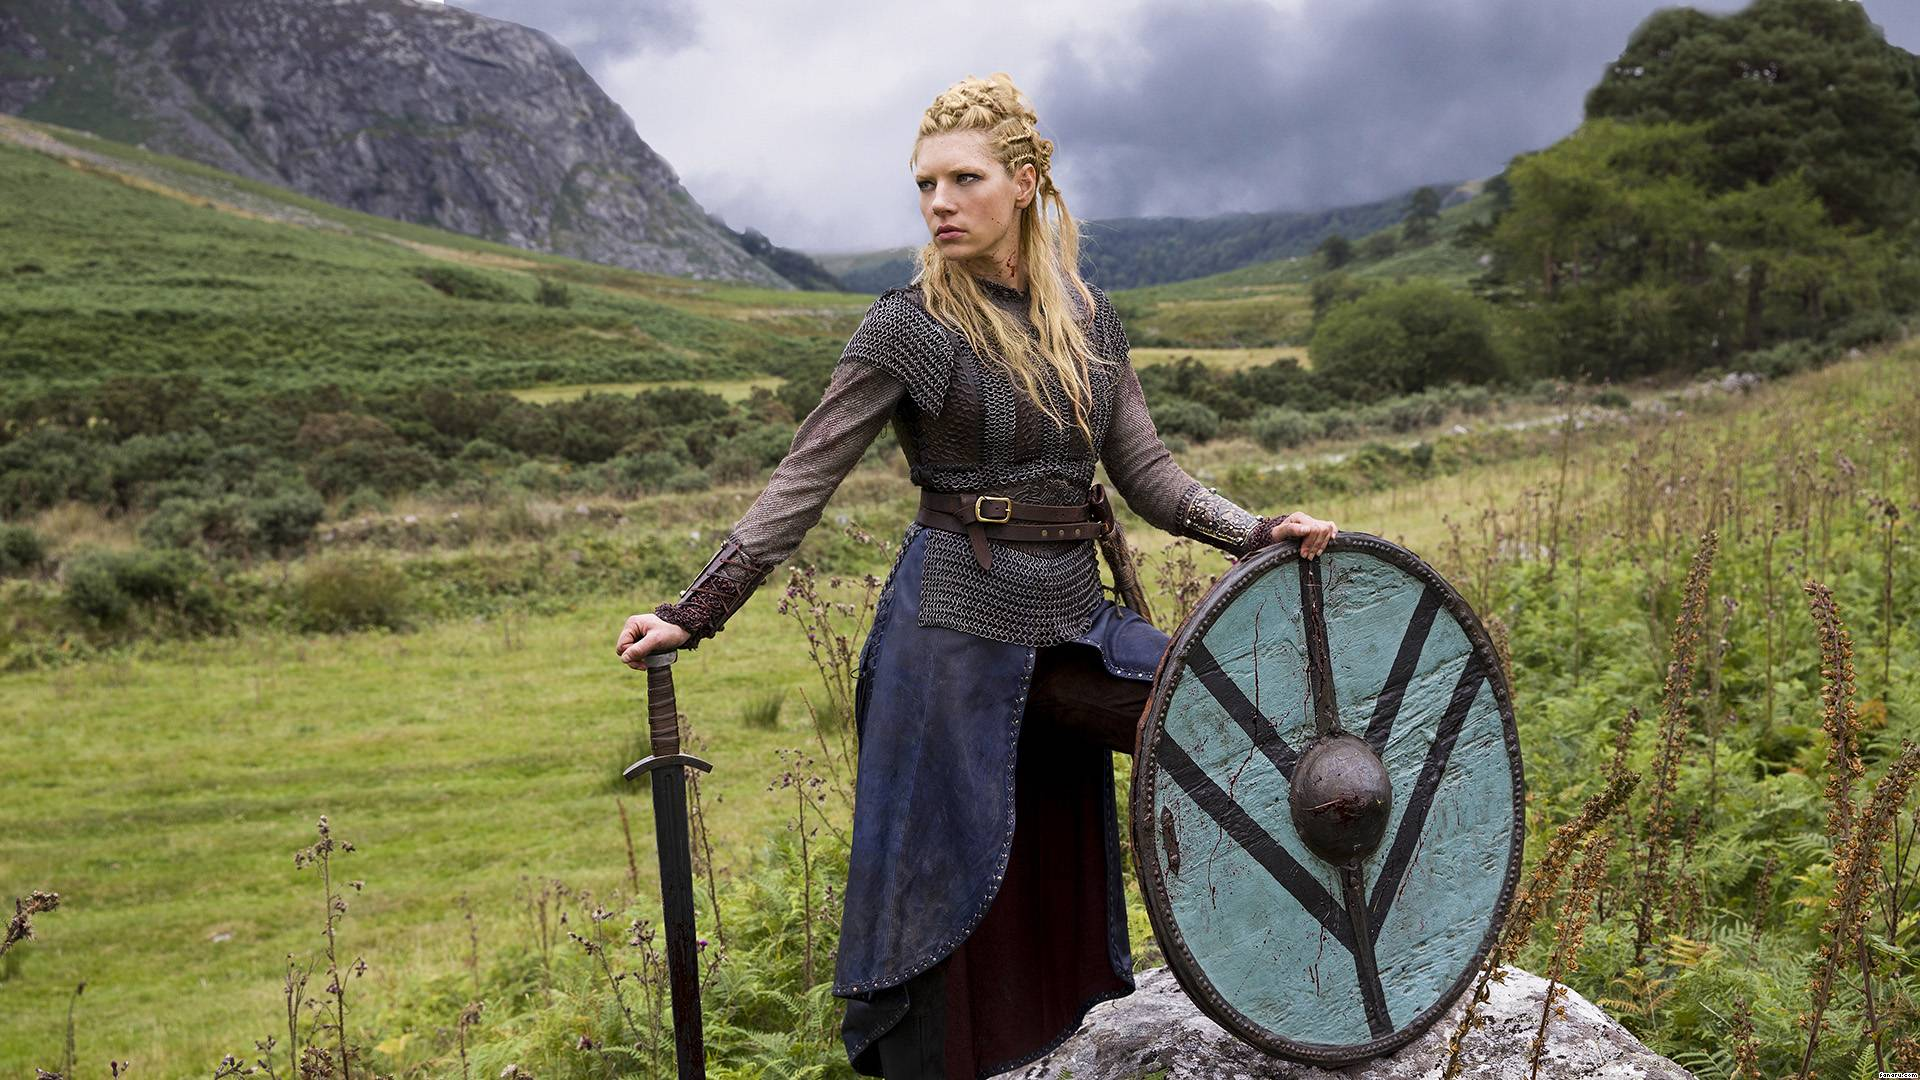 Feature: Of Lagertha, valkyries and other Viking era ...